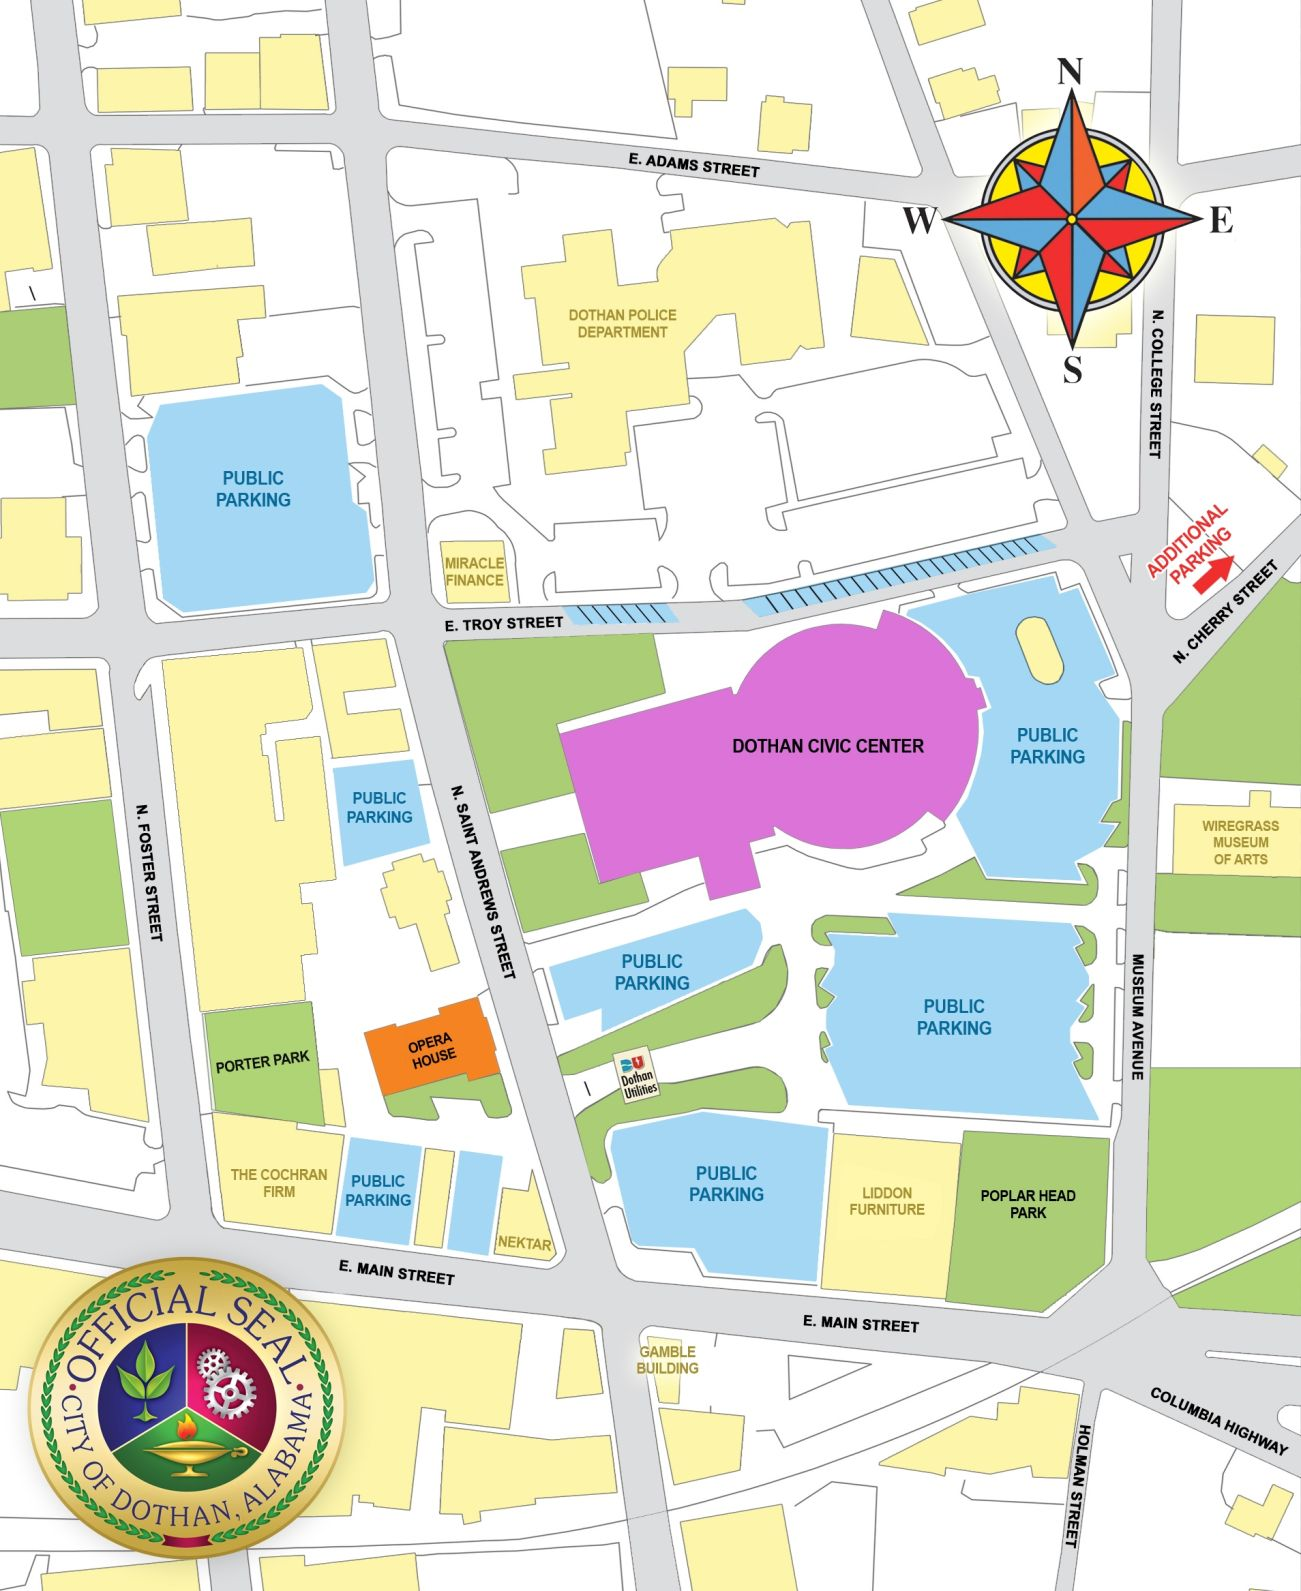 dowtown parking map dothaneaglecom